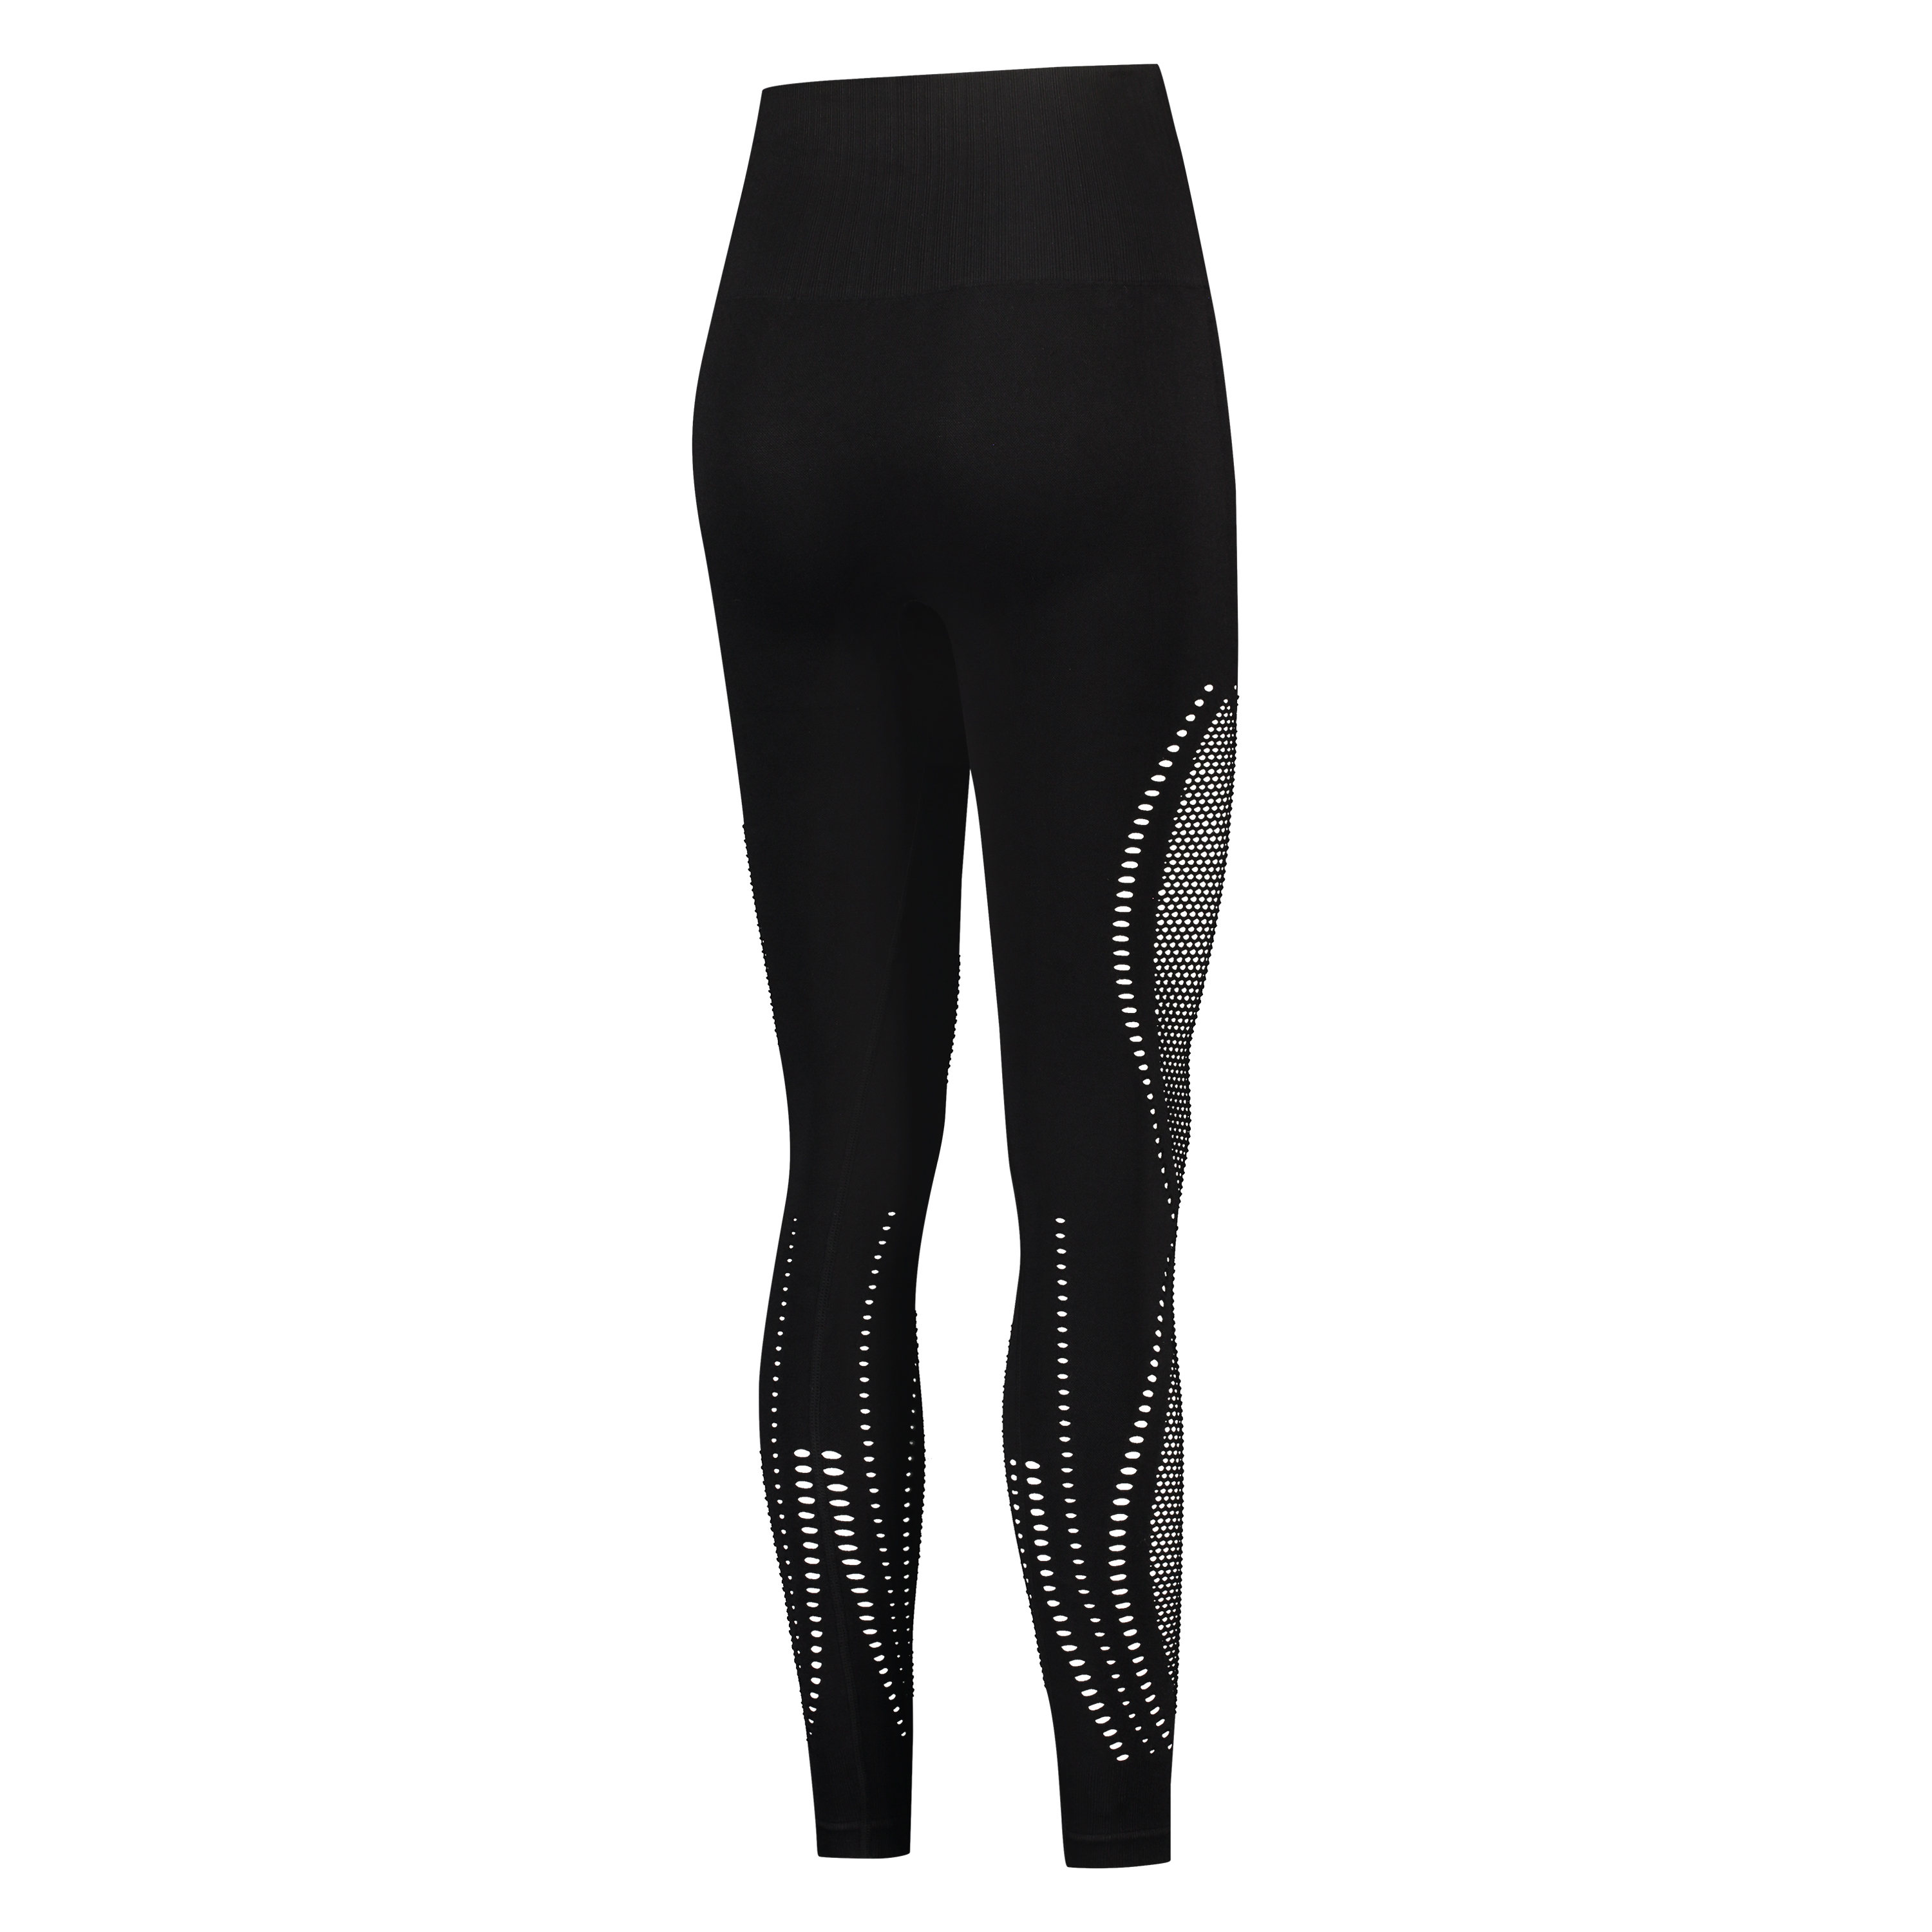 HKMX High waist naadloze sportlegging Comfort, Zwart, main